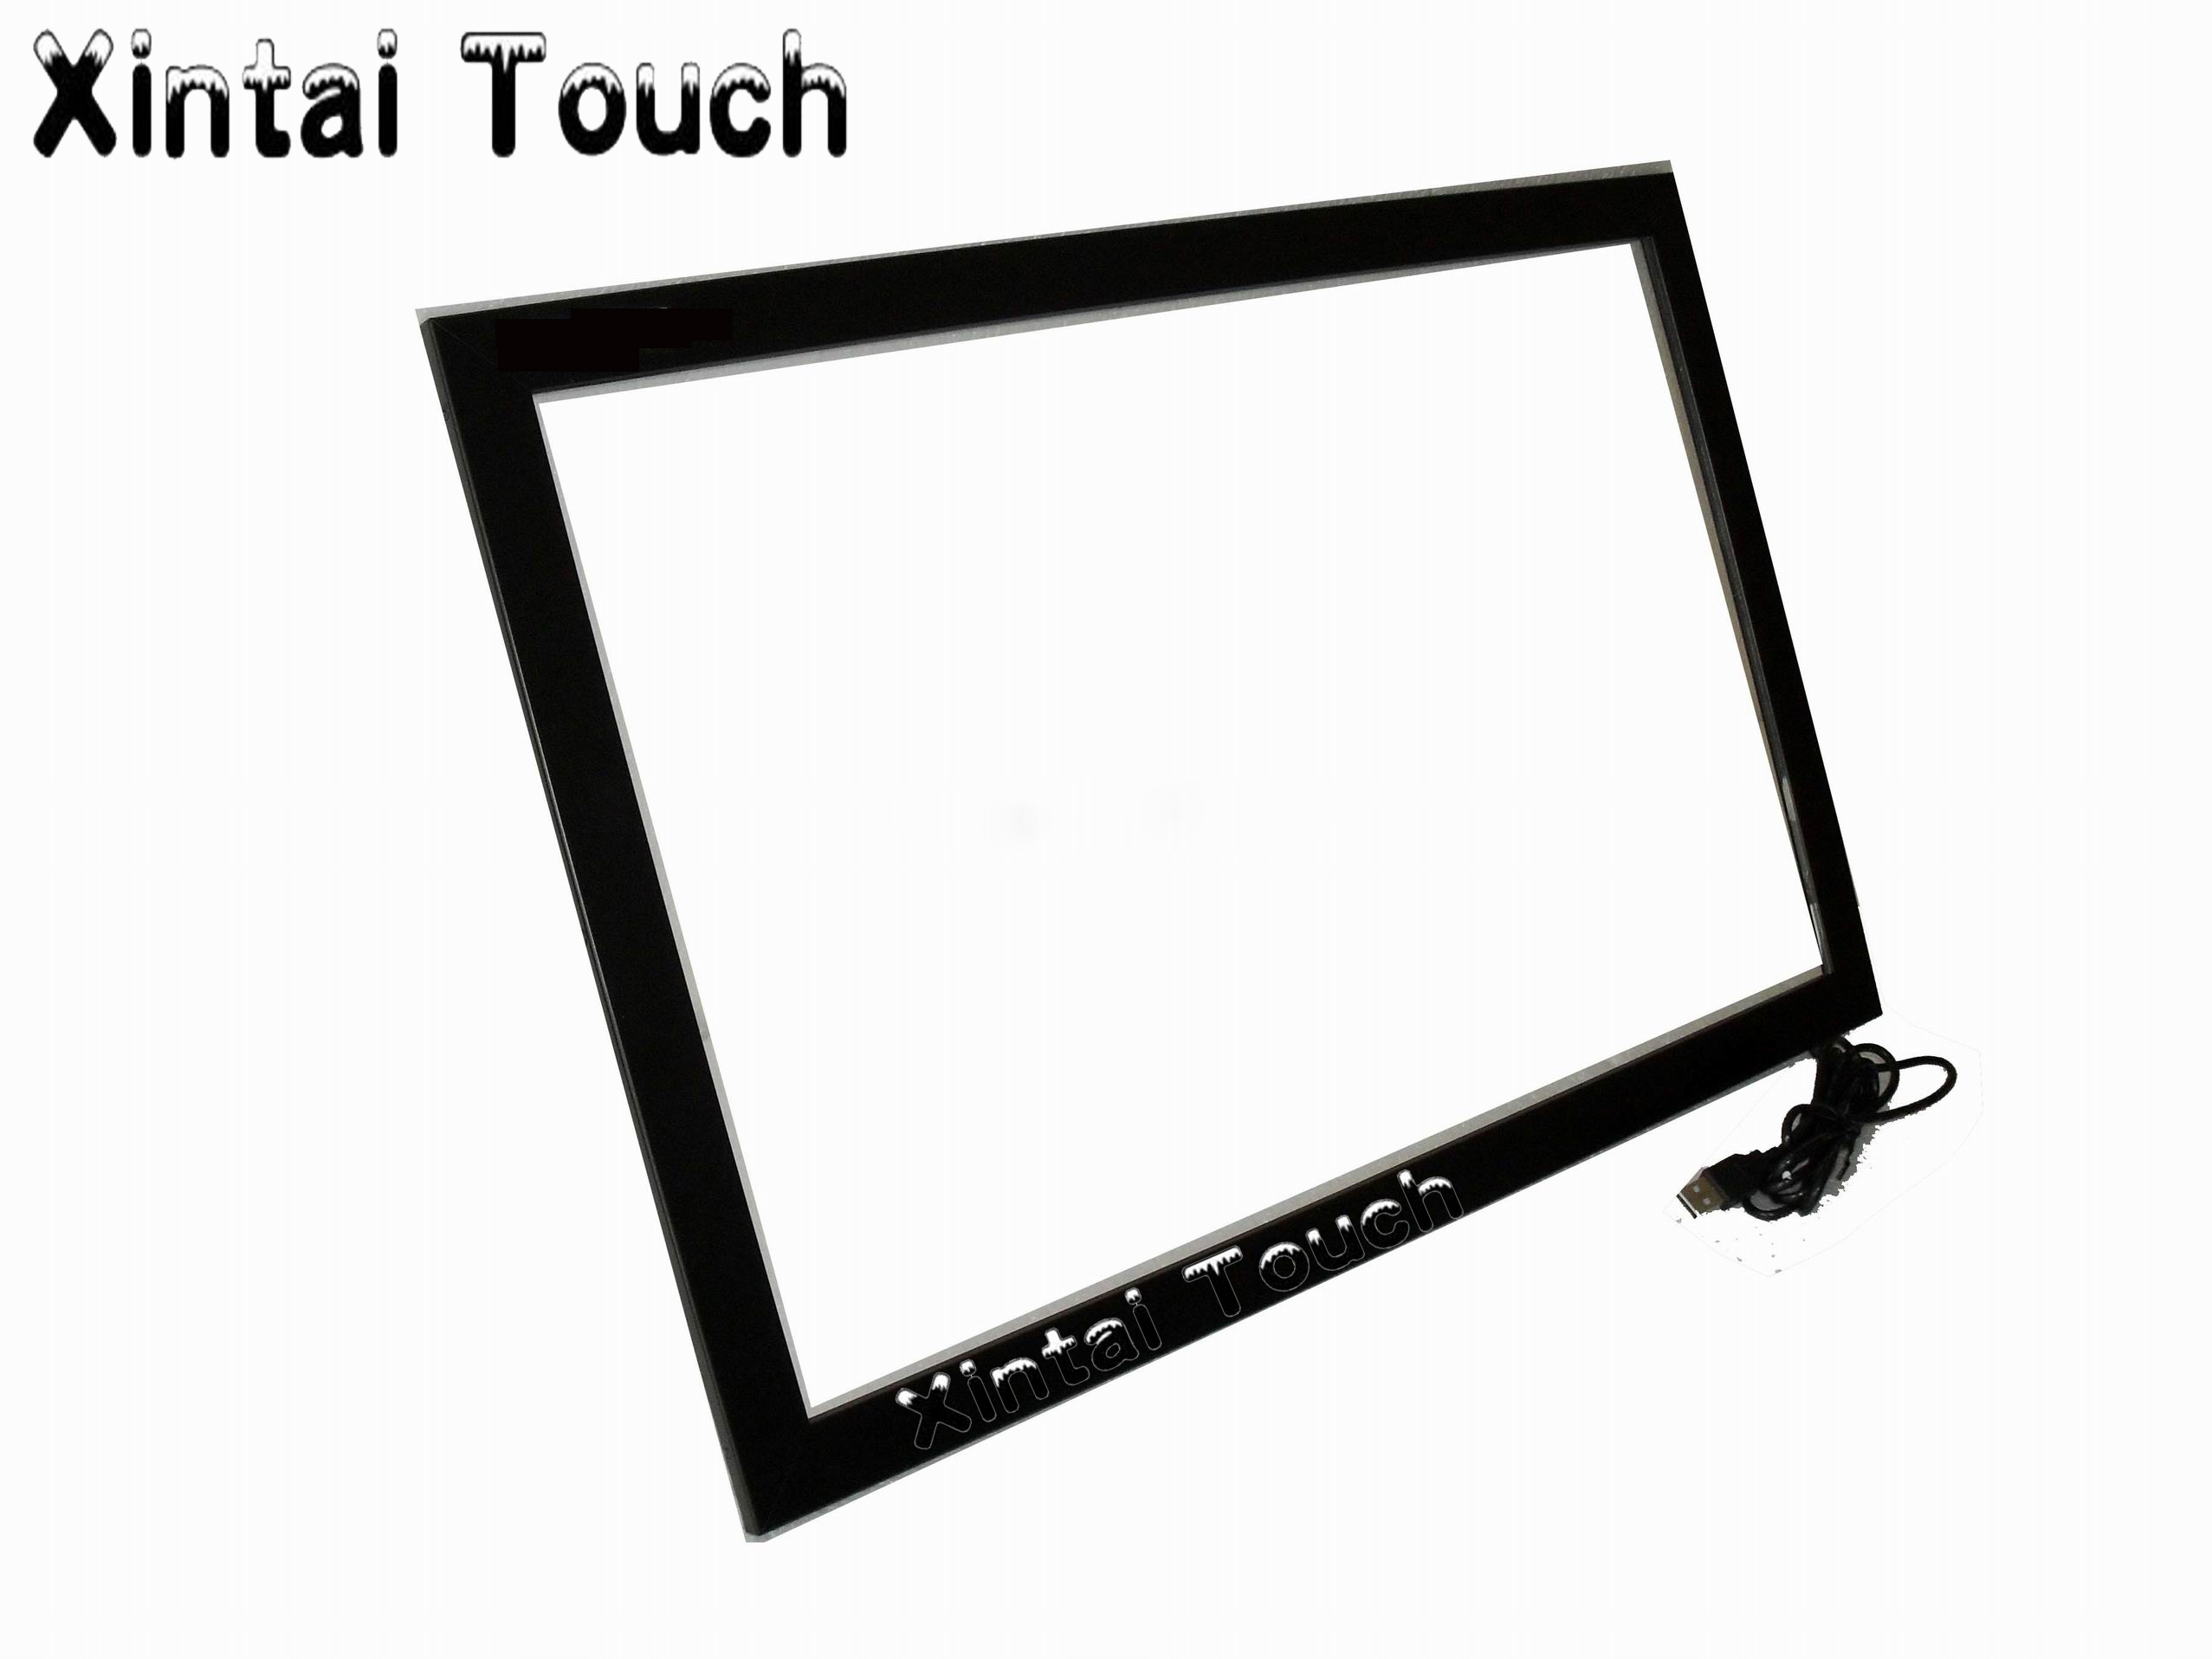 Hot sale Latest version 60 Inch USB IR Multi Touch Screen Panel touch screen overlay 10